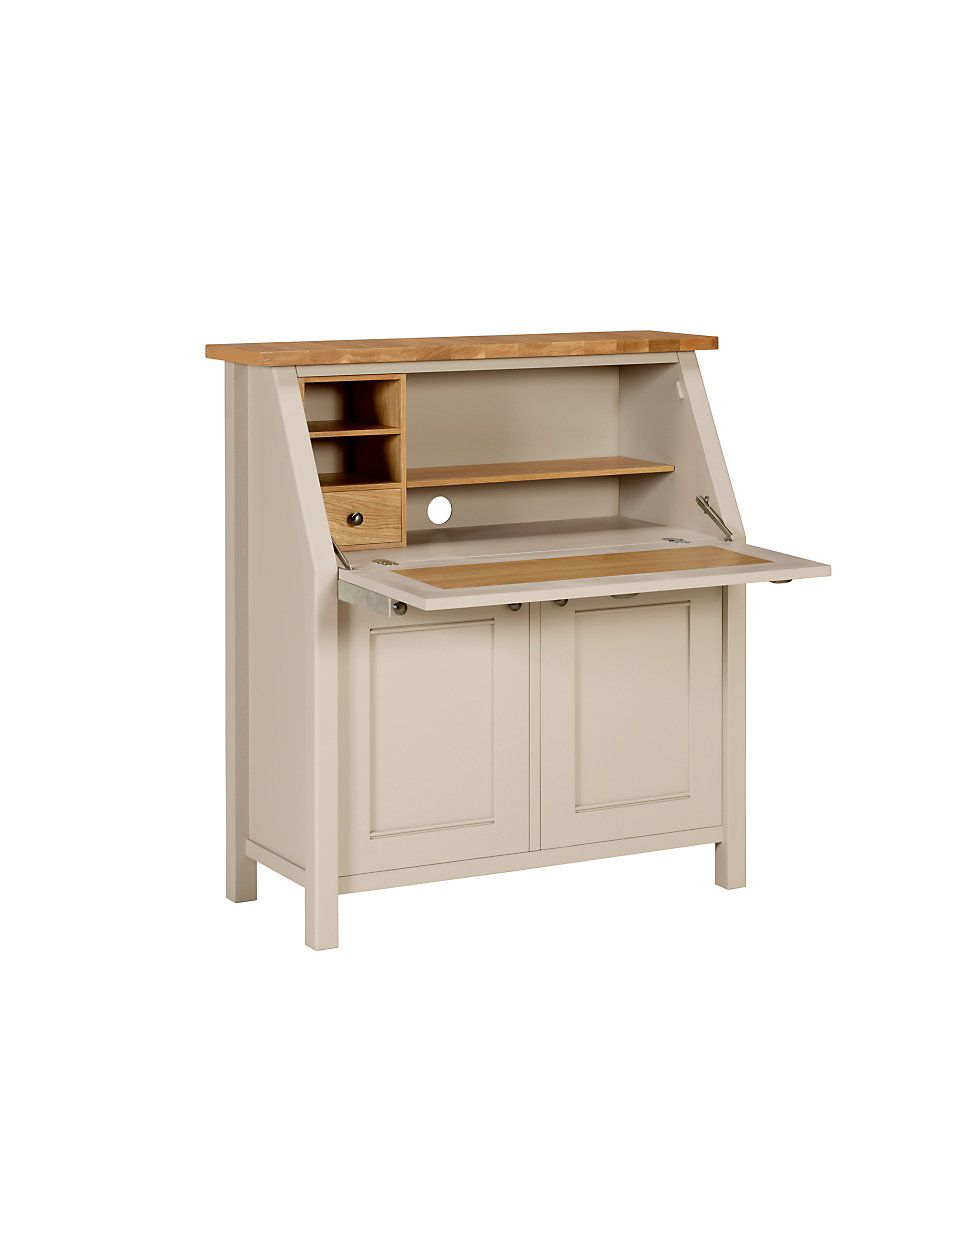 Bien connu Inspiration for ikea hemnes bureau--sand off white stain on top  LE12